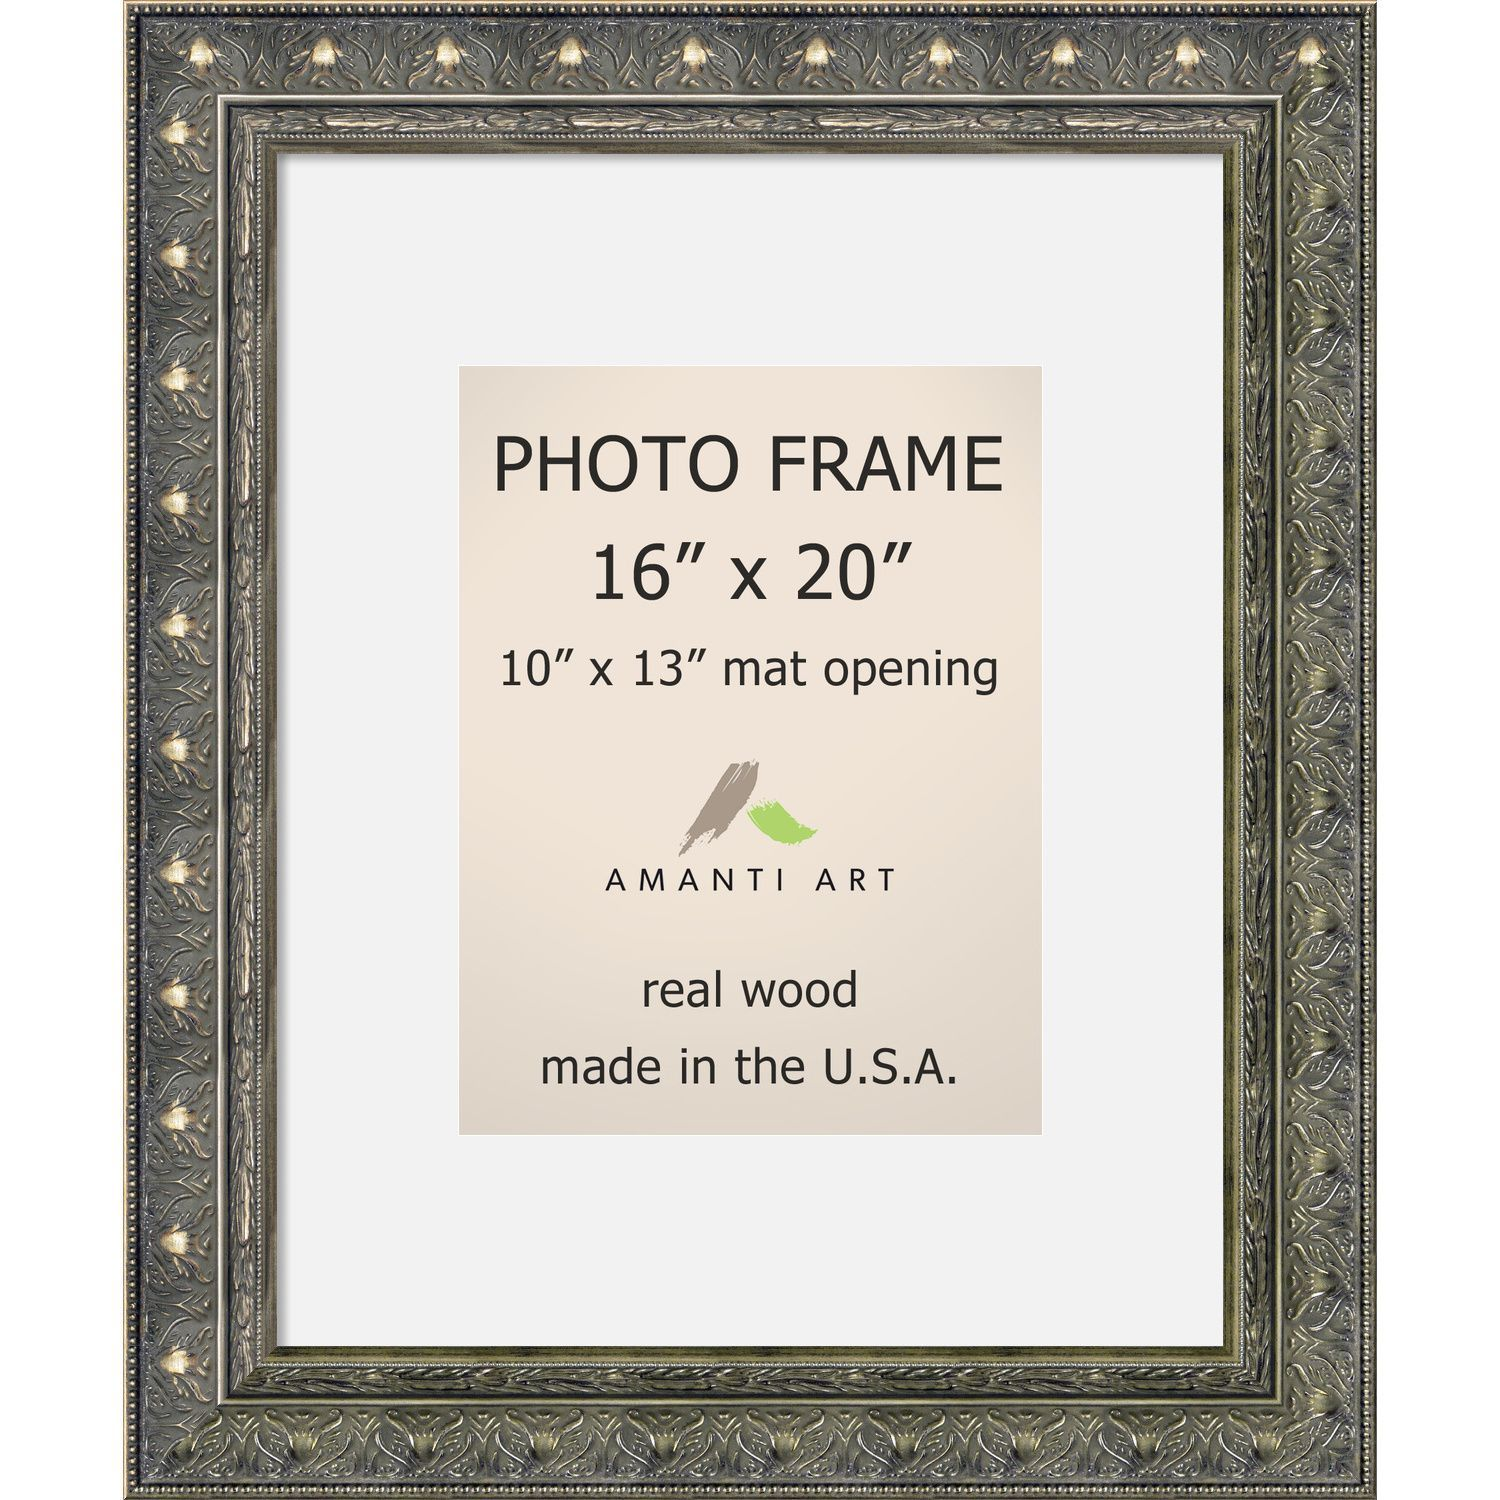 Atemberaubend 16x20 Matted Picture Frame Galerie